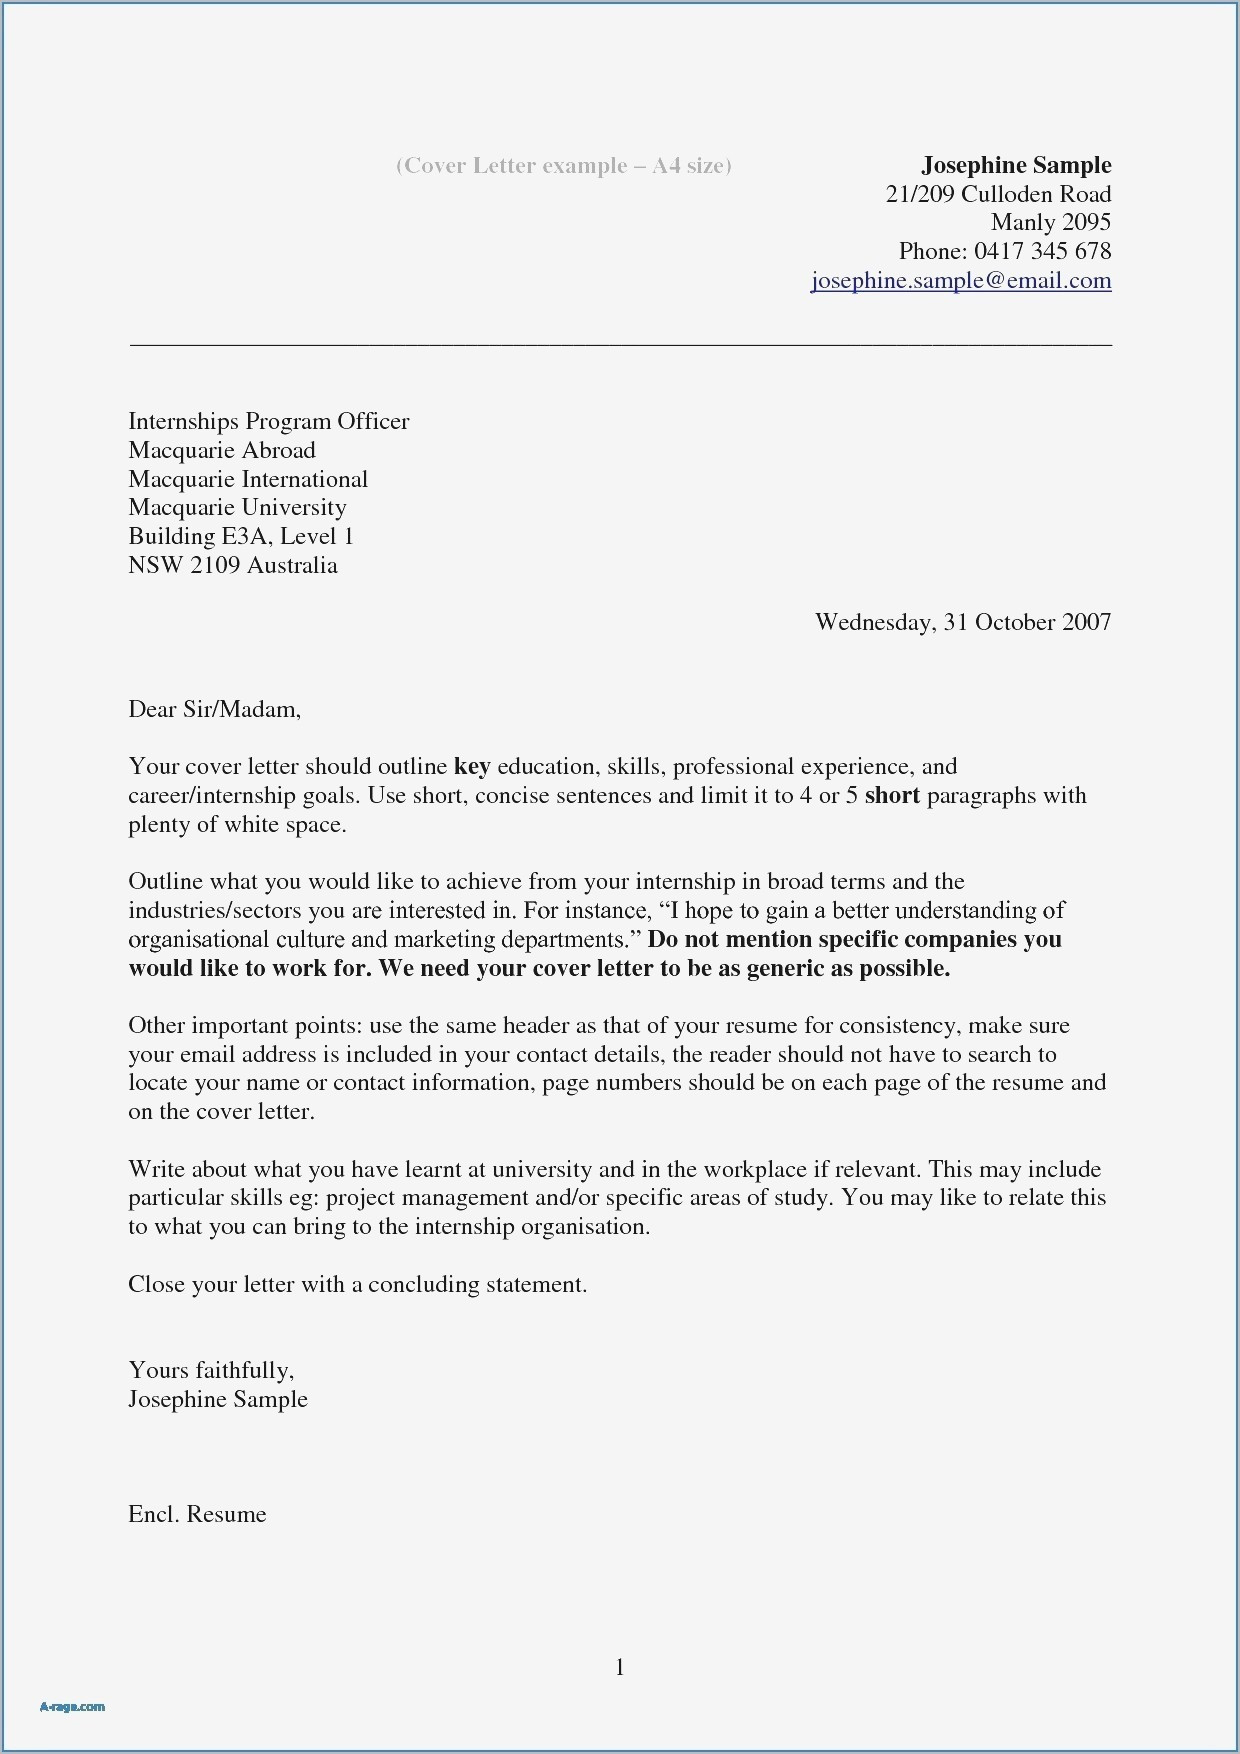 Compassion International Letter Template - Elegant Resume Template New Free Resume Letter Templates Fresh